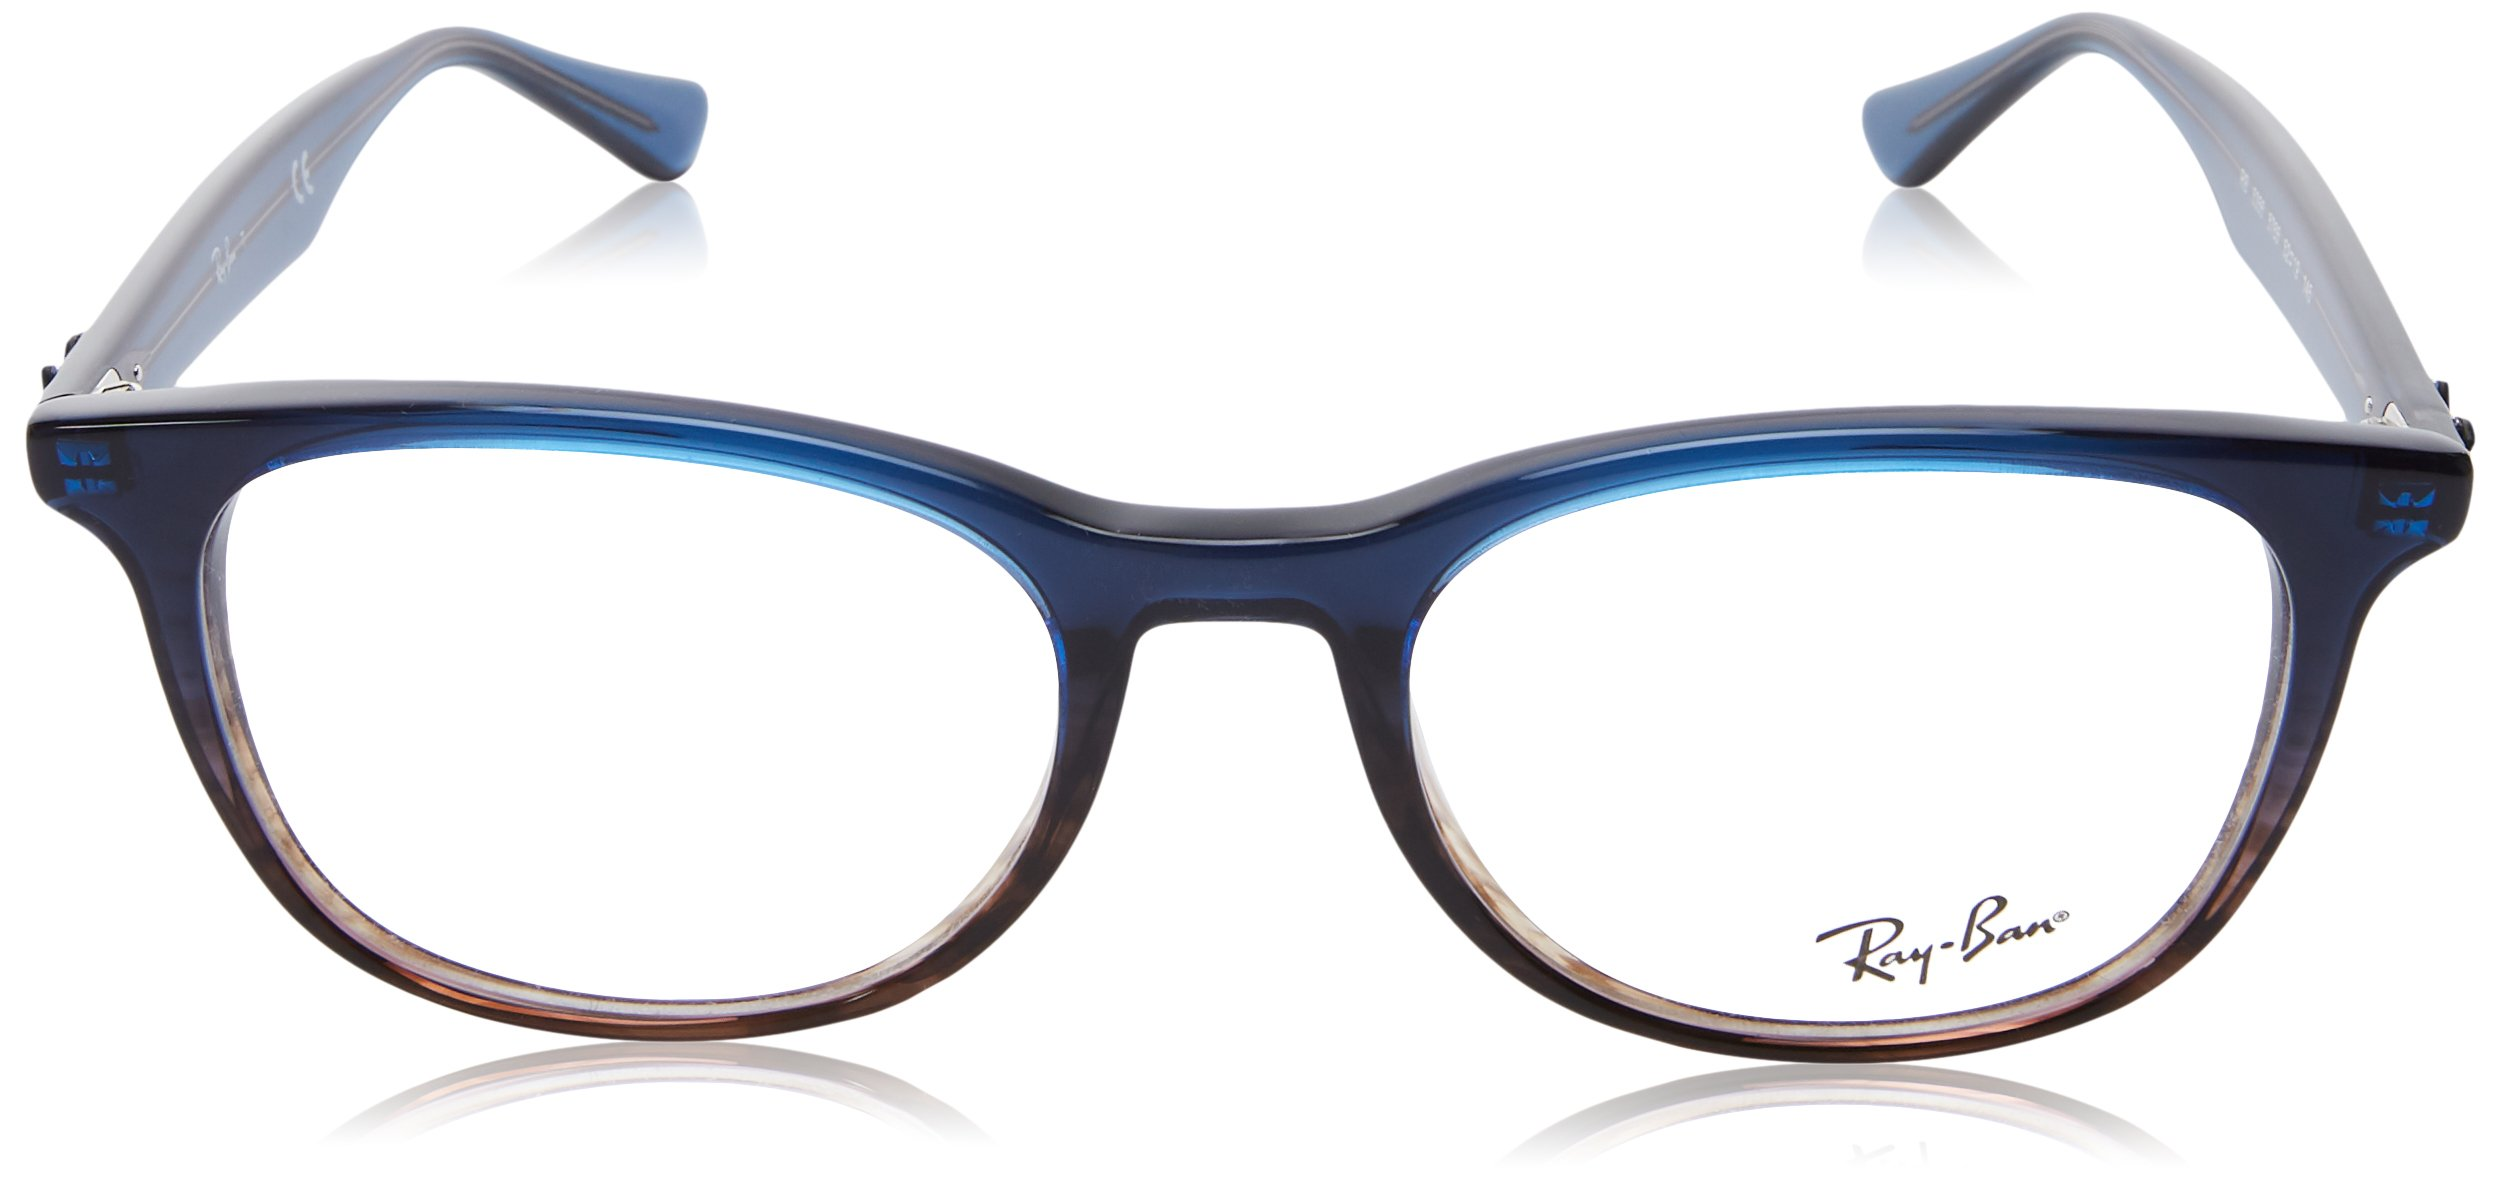 Ray-Ban RX5356 Square Eyeglass Frames, Blue Grey  /Demo Lens, 52 mm by Ray-Ban (Image #2)